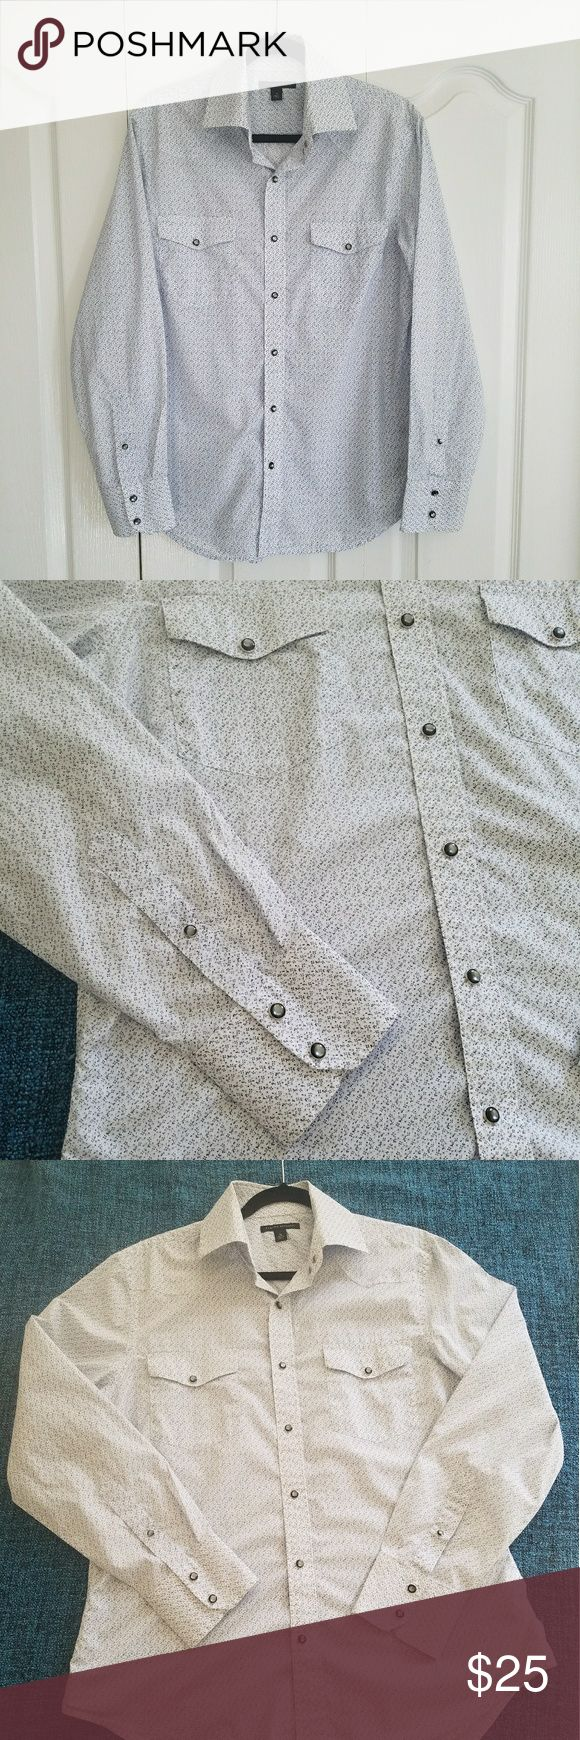 Banana Republic Long Sleeve Casual Shirt Nice pattern men's shirt from Banana Republic with two pockets.  Size Medium. Condition is like new! Banana Republic Shirts Casual Button Down Shirts